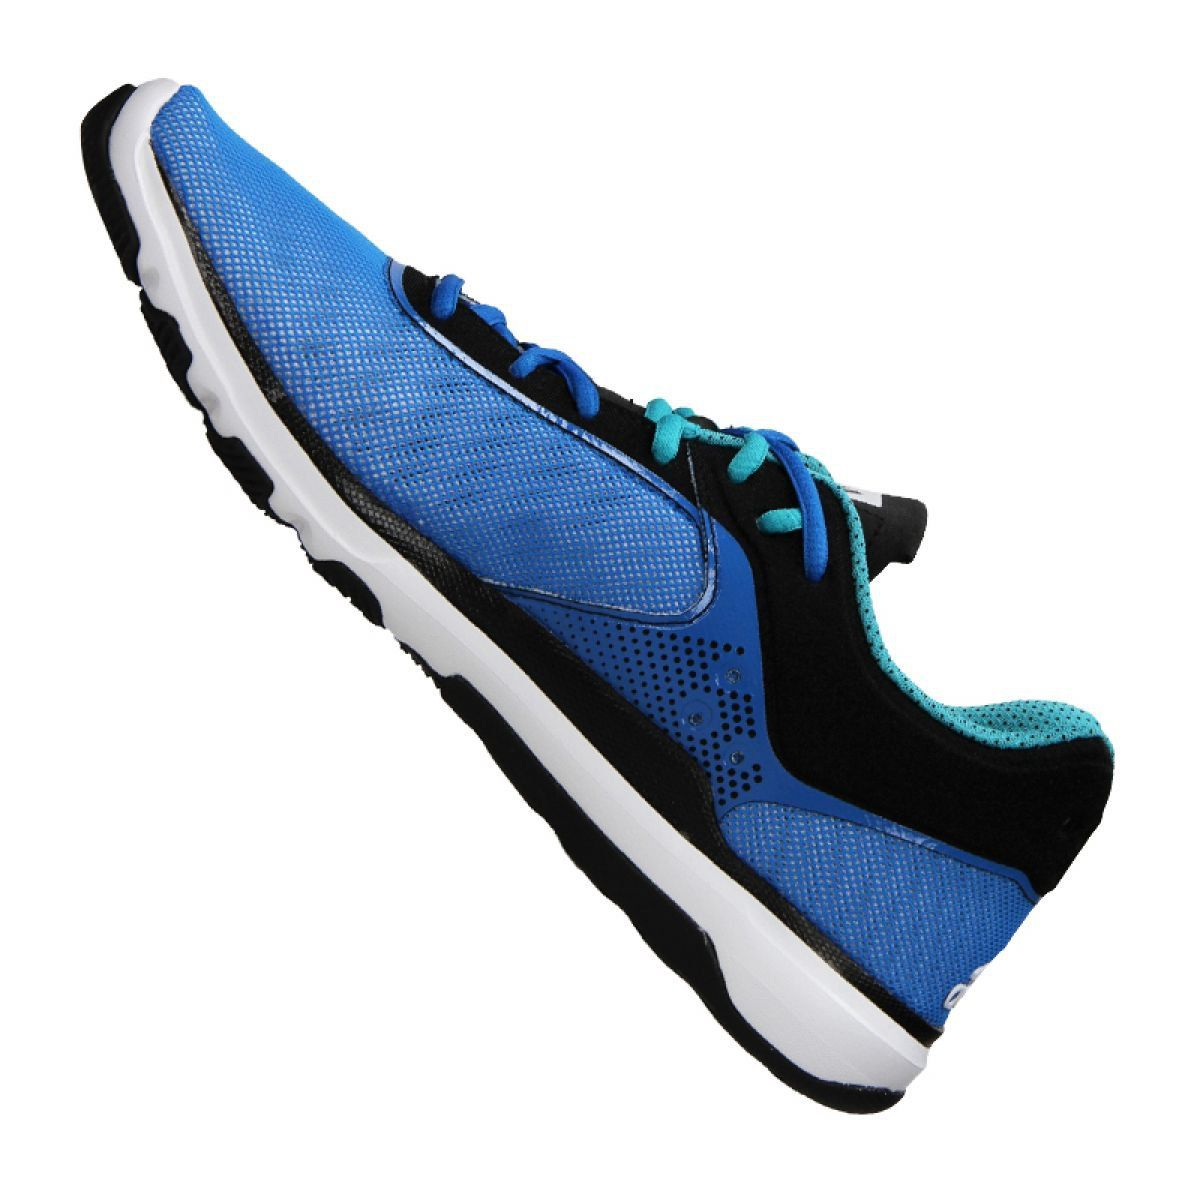 Buty Adidas Adipure 360 3 Chill Af5460 Niebieskie Blue Shoes Sports Shoes Adidas Adipure